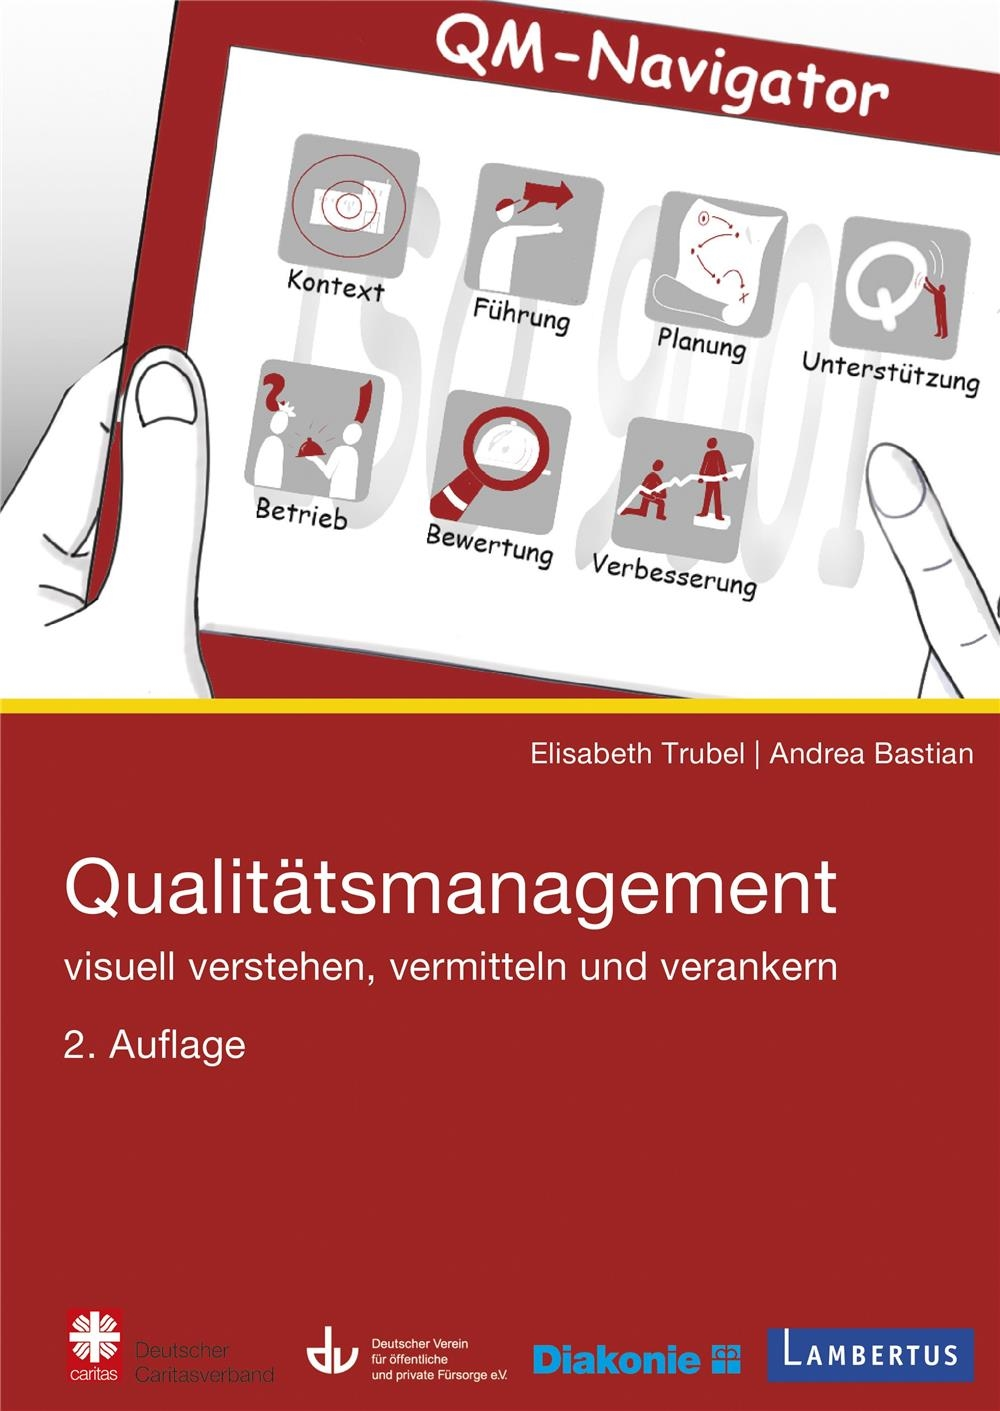 Trubel_Bastian_Qualitätsmanagement_2.A.